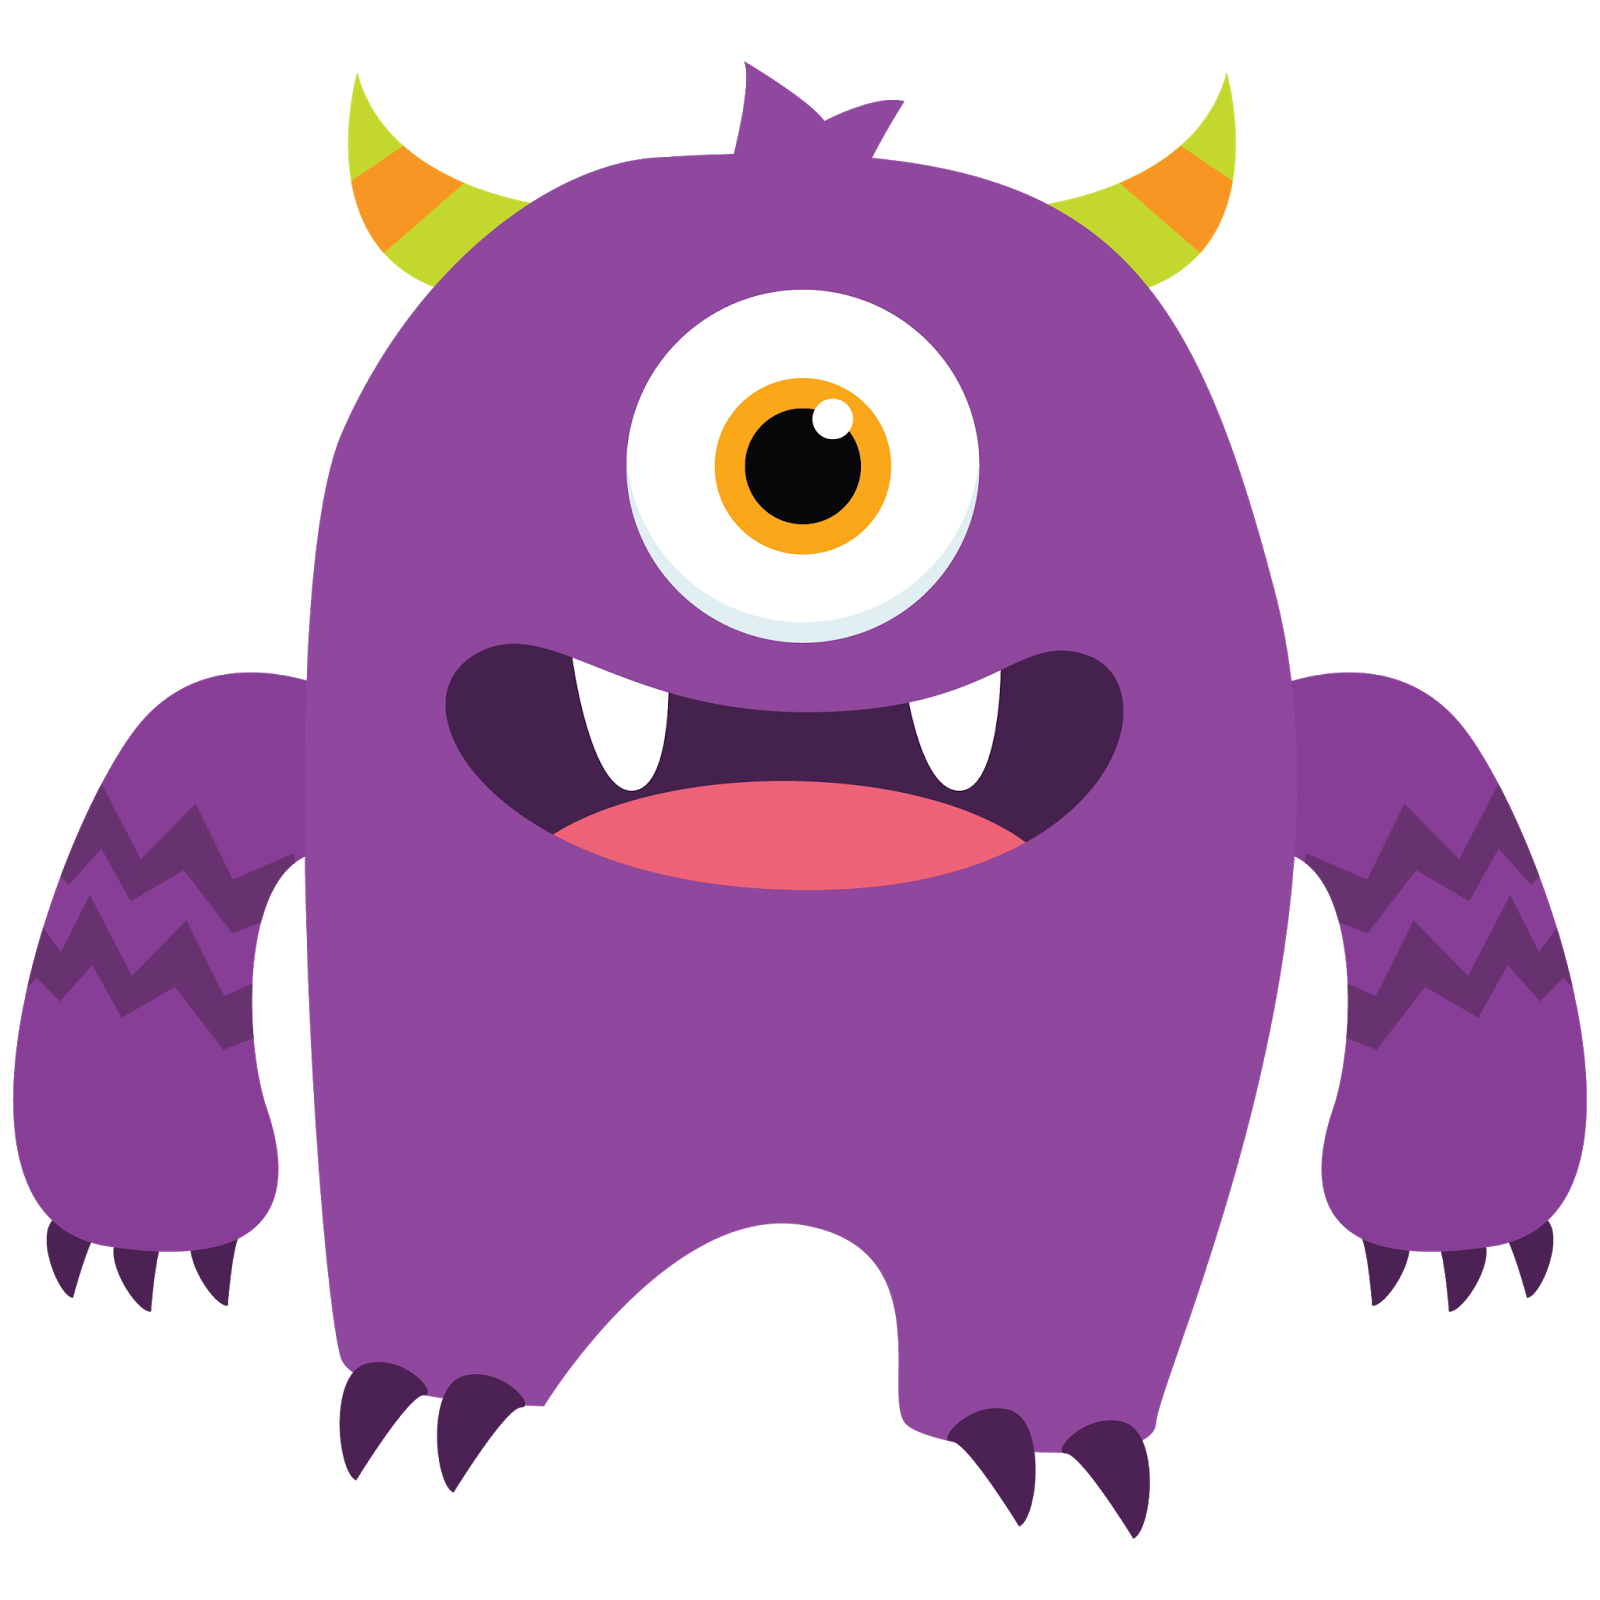 Cookie at getdrawings com. Tree clipart monster